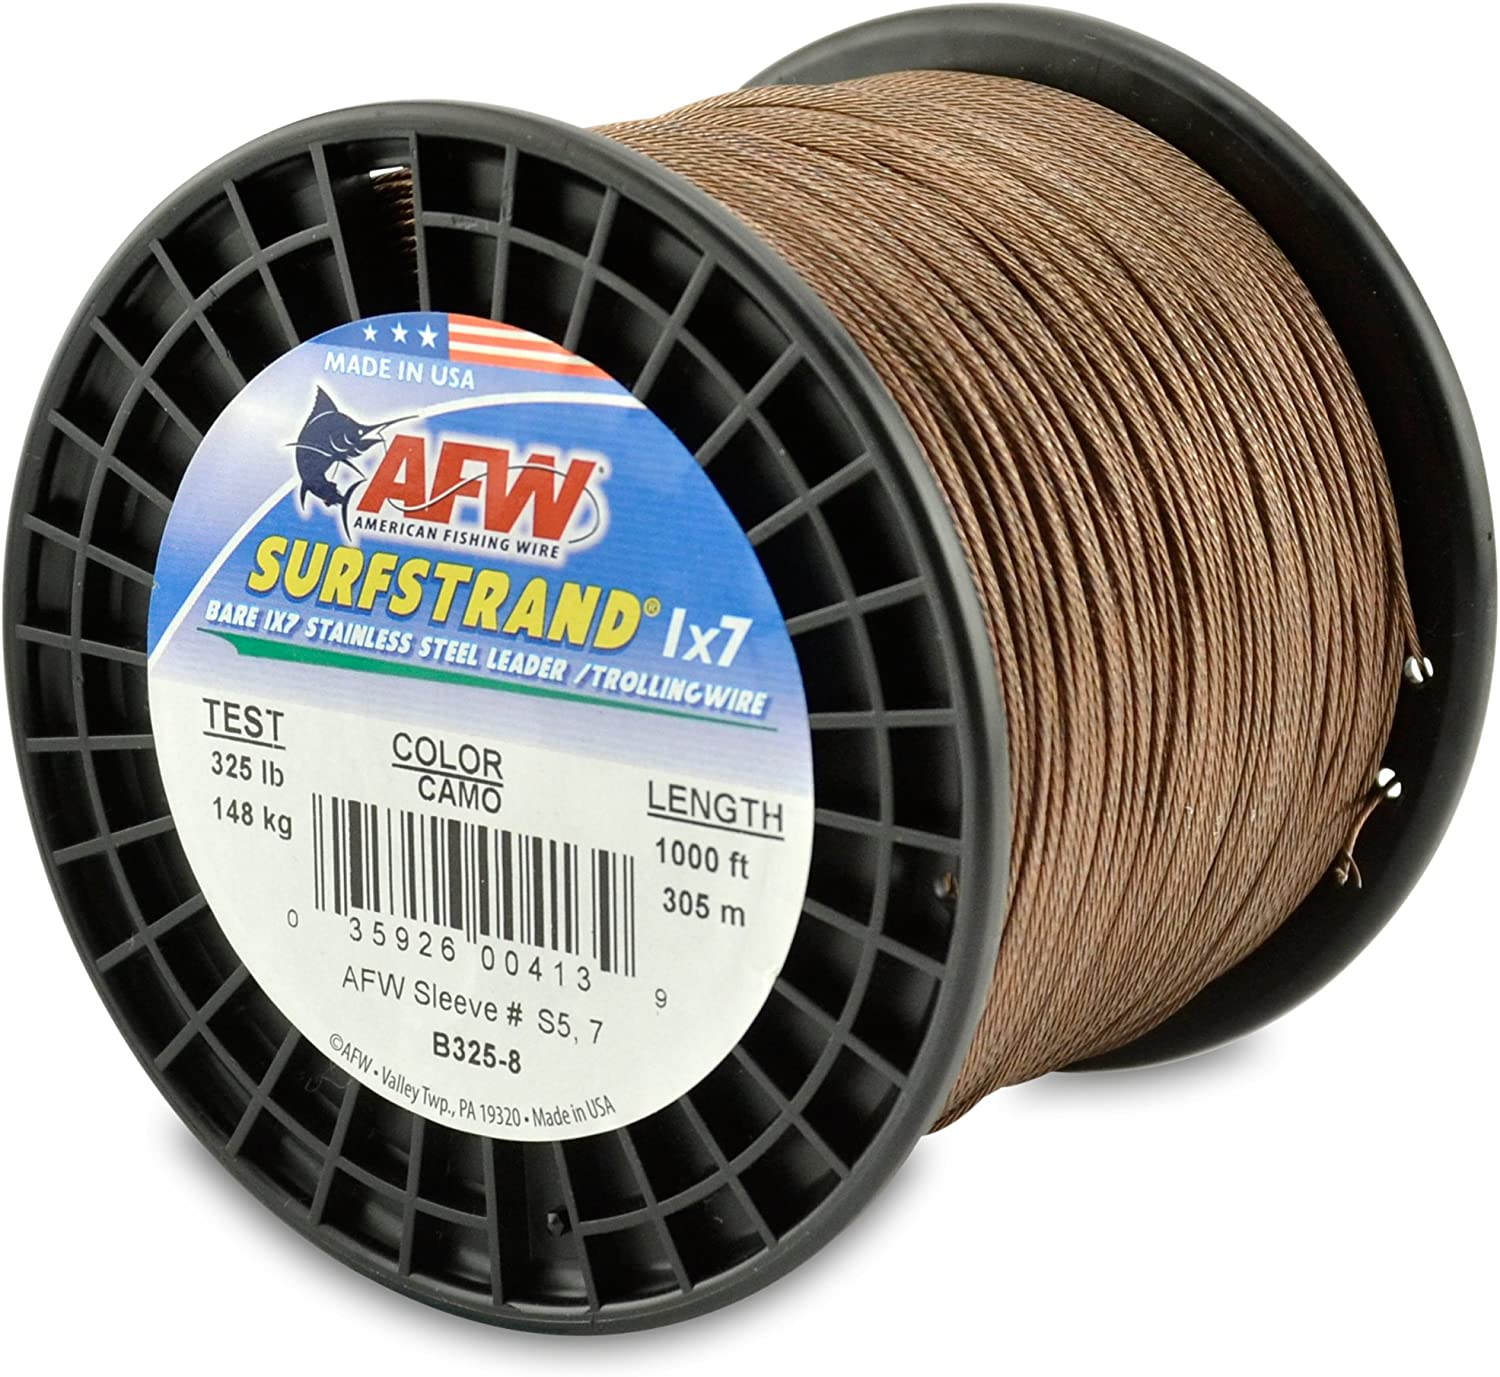 American Fishing Wire Surfstrand Bare 1x7 Stainless Steel Leader Wire